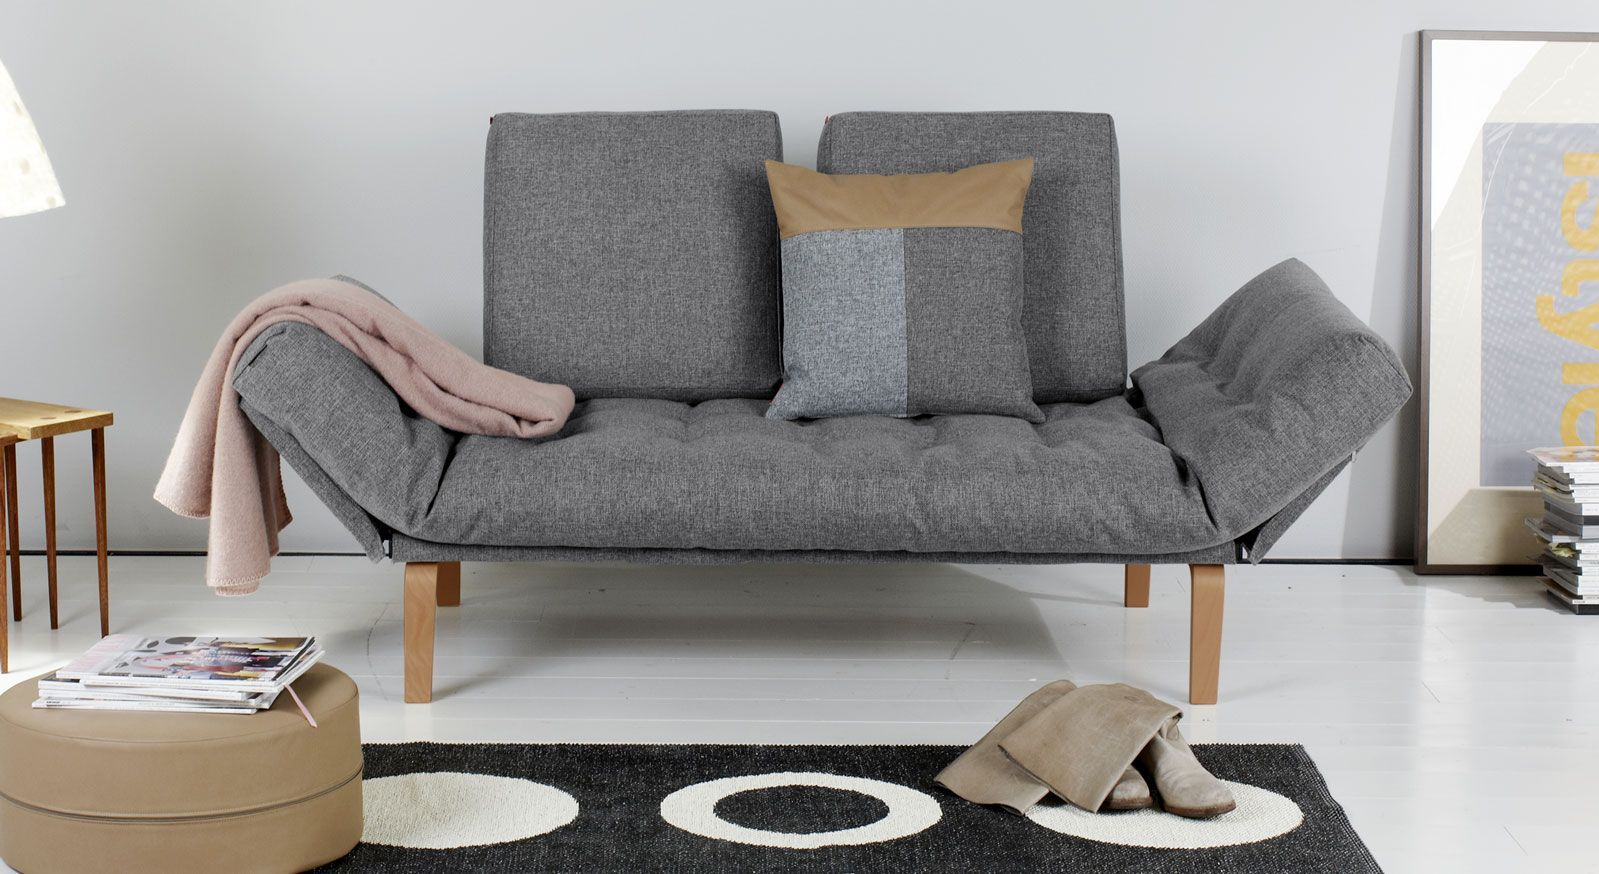 Schlafsofa Steward in grauem Twist-Webstoff